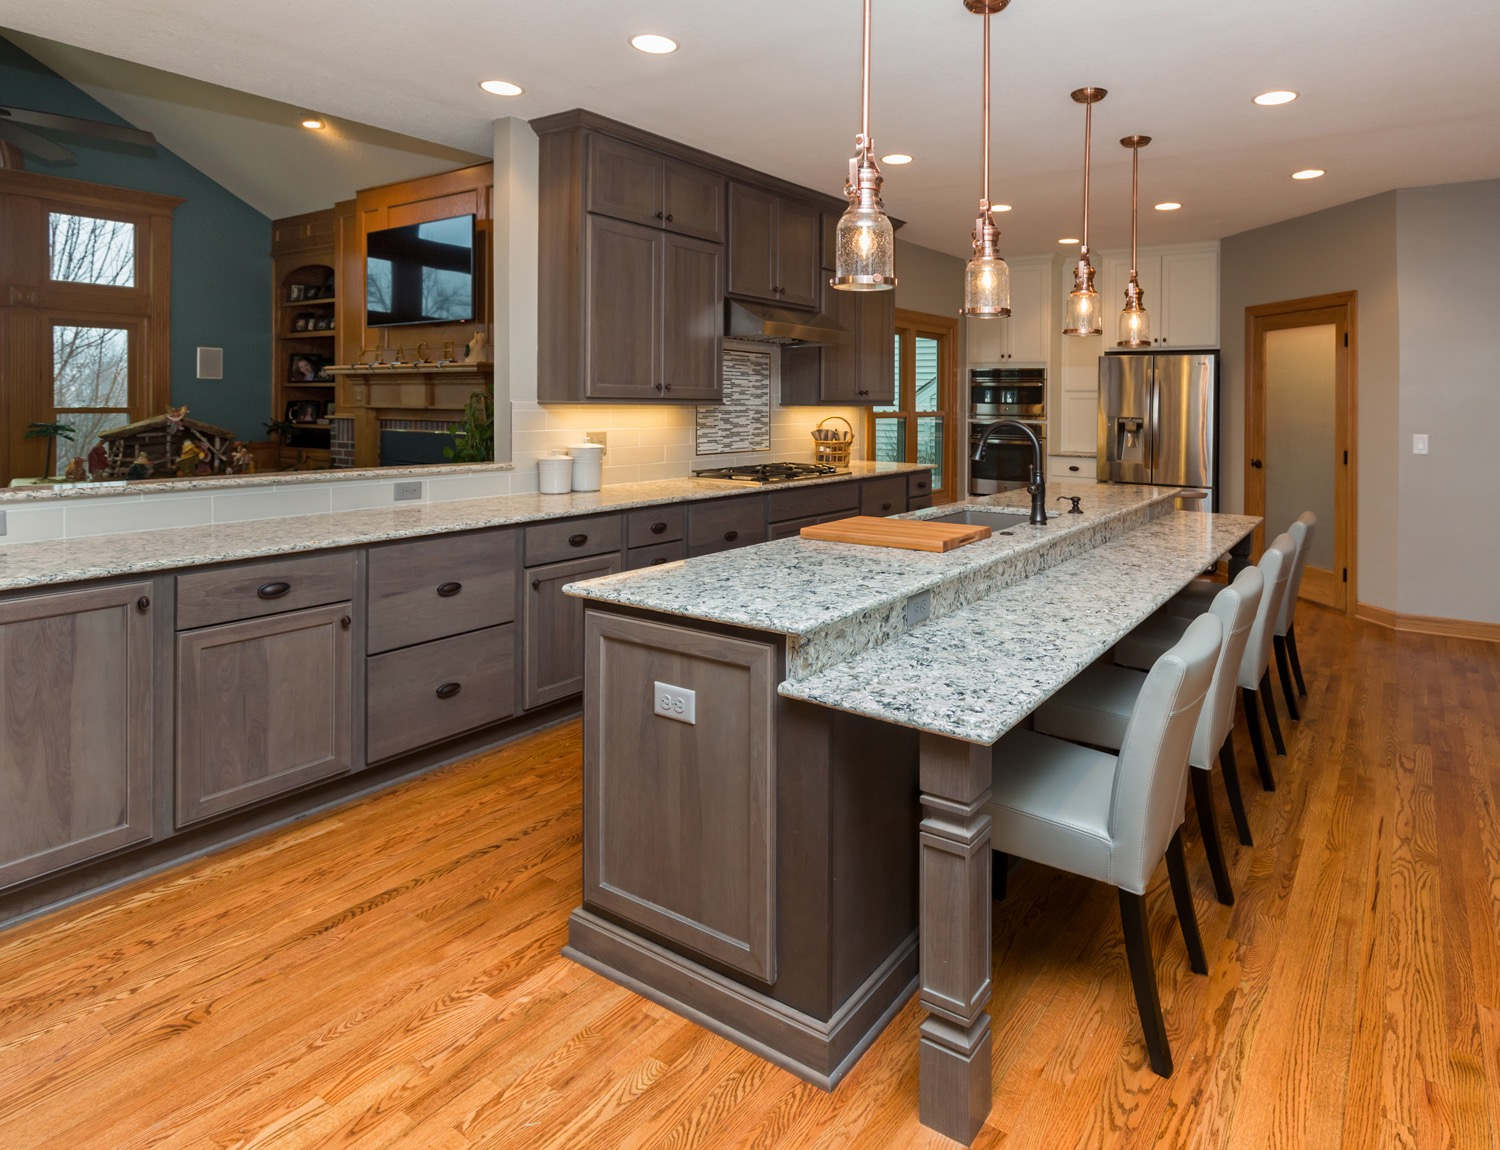 Red House Remodeling – Home Remodeling Des Moines Iowa